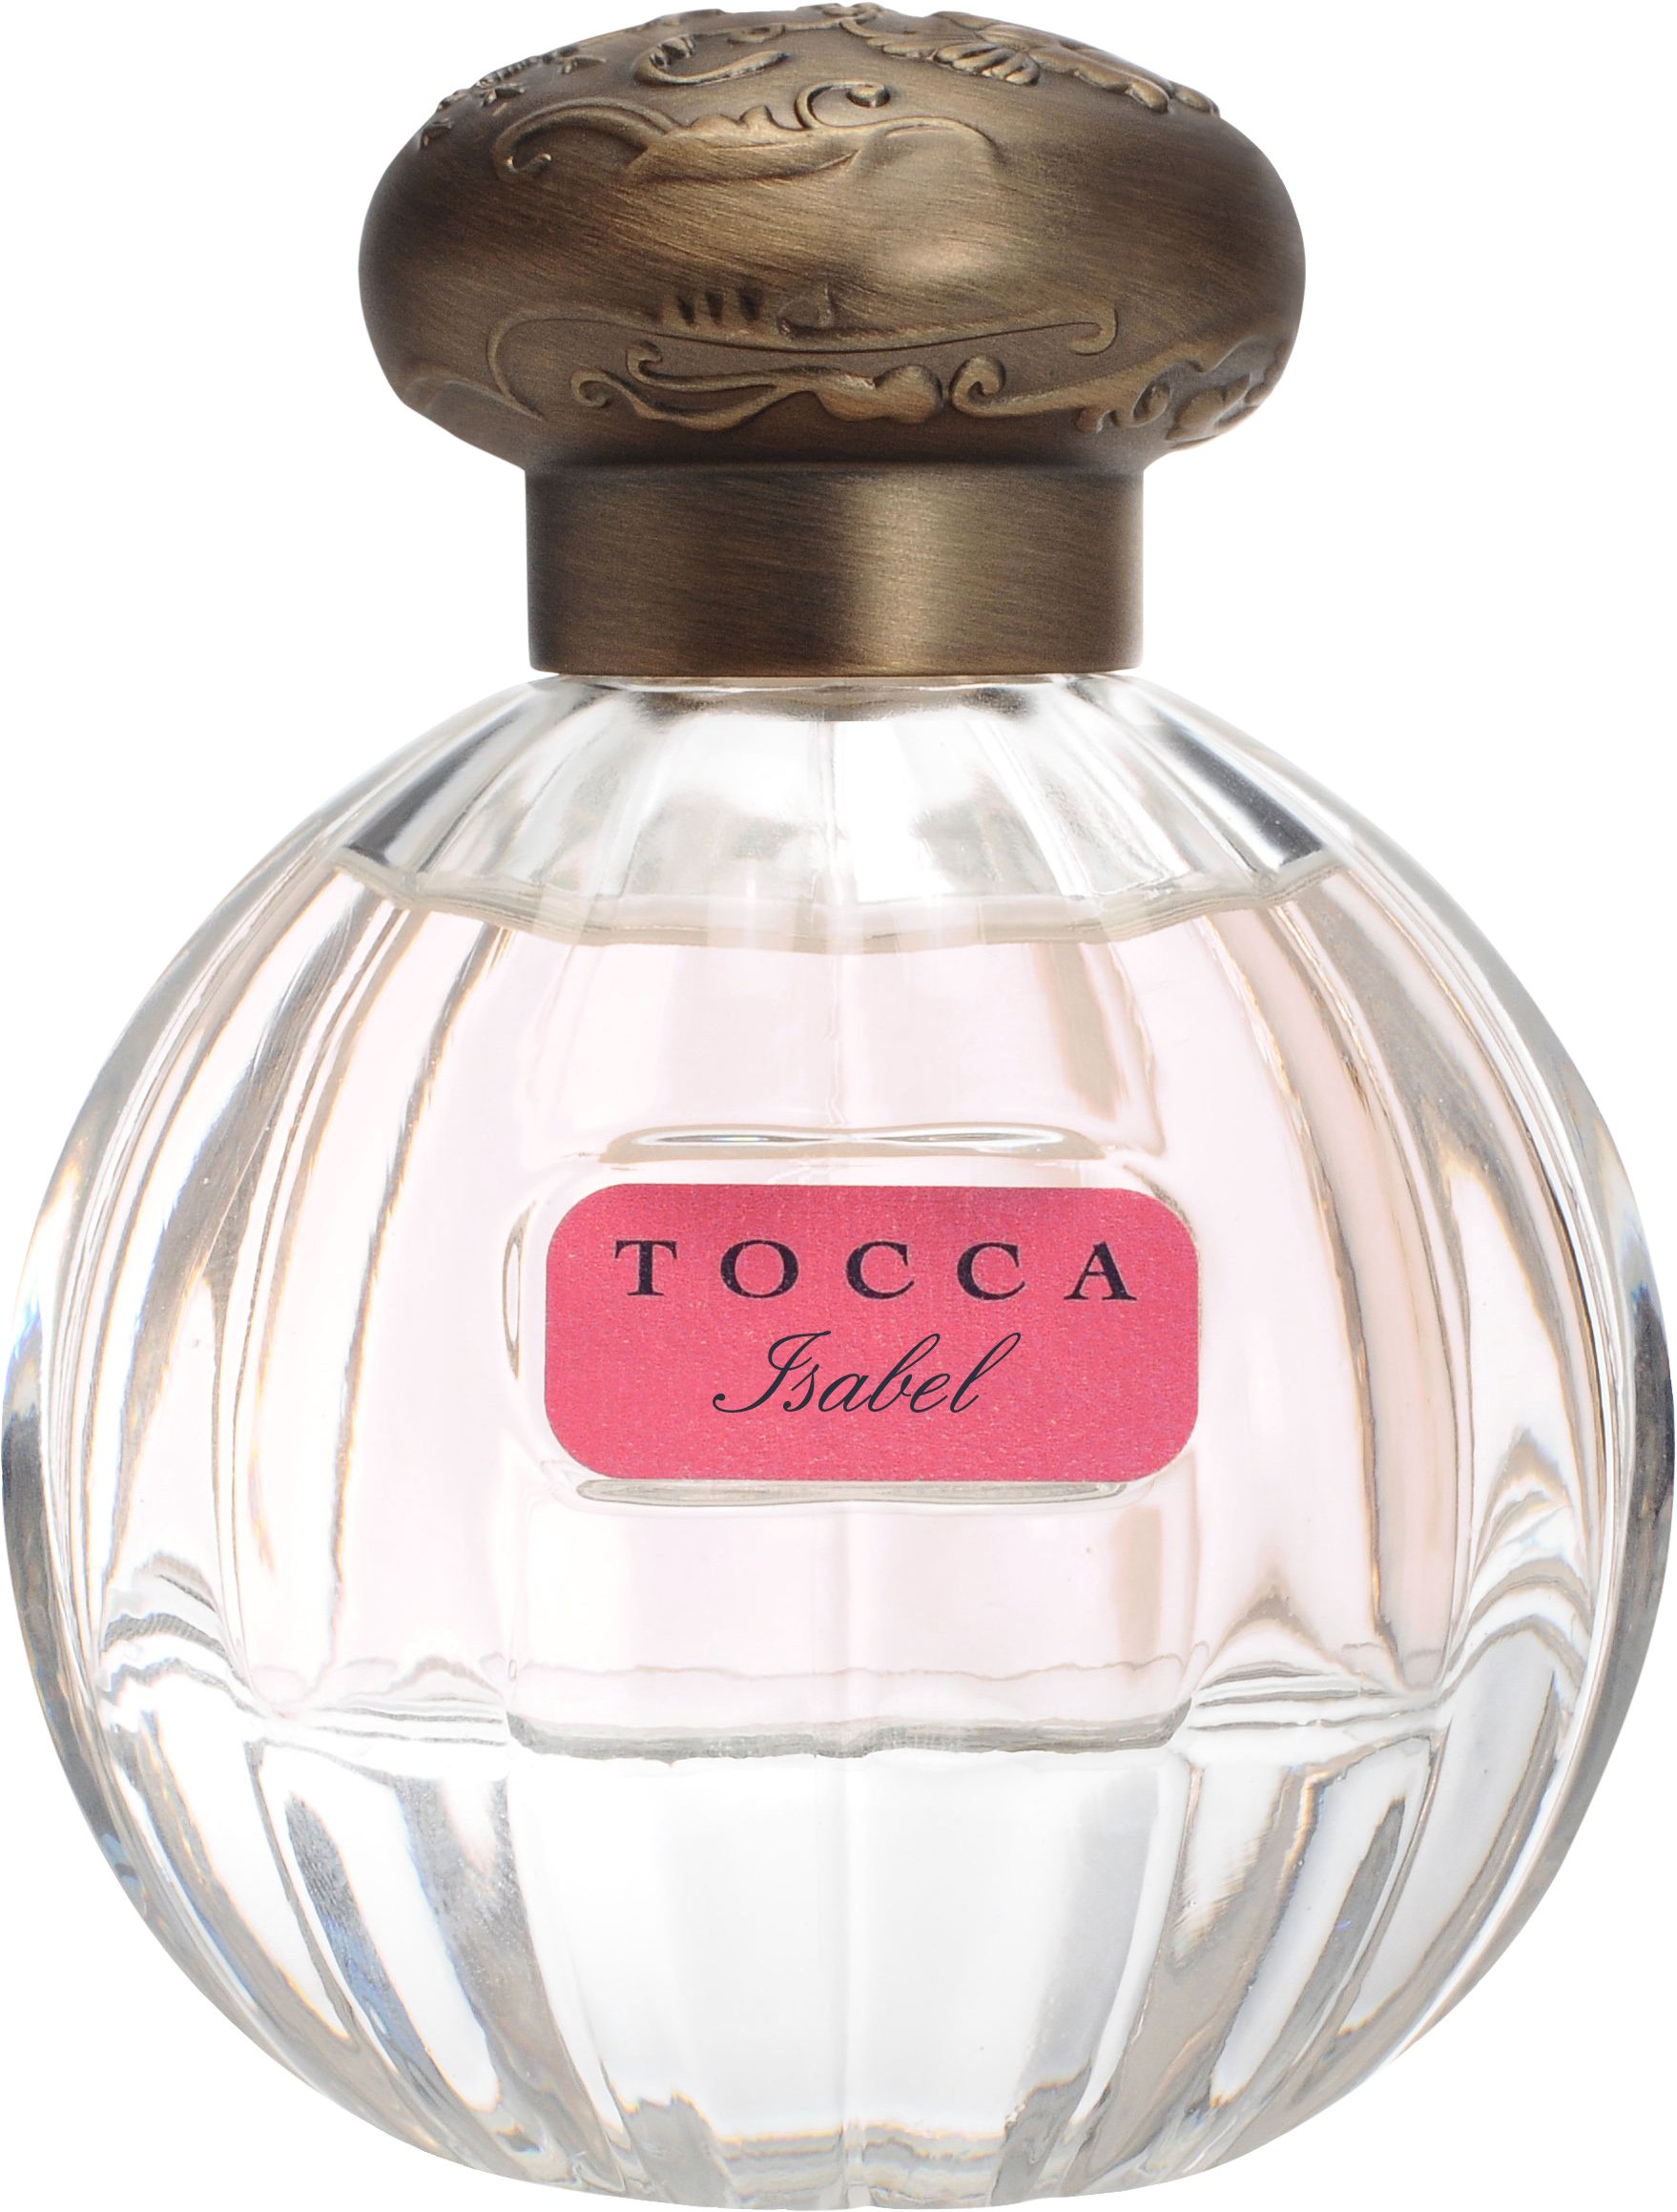 Tocca - Isabel EDP 50 ml